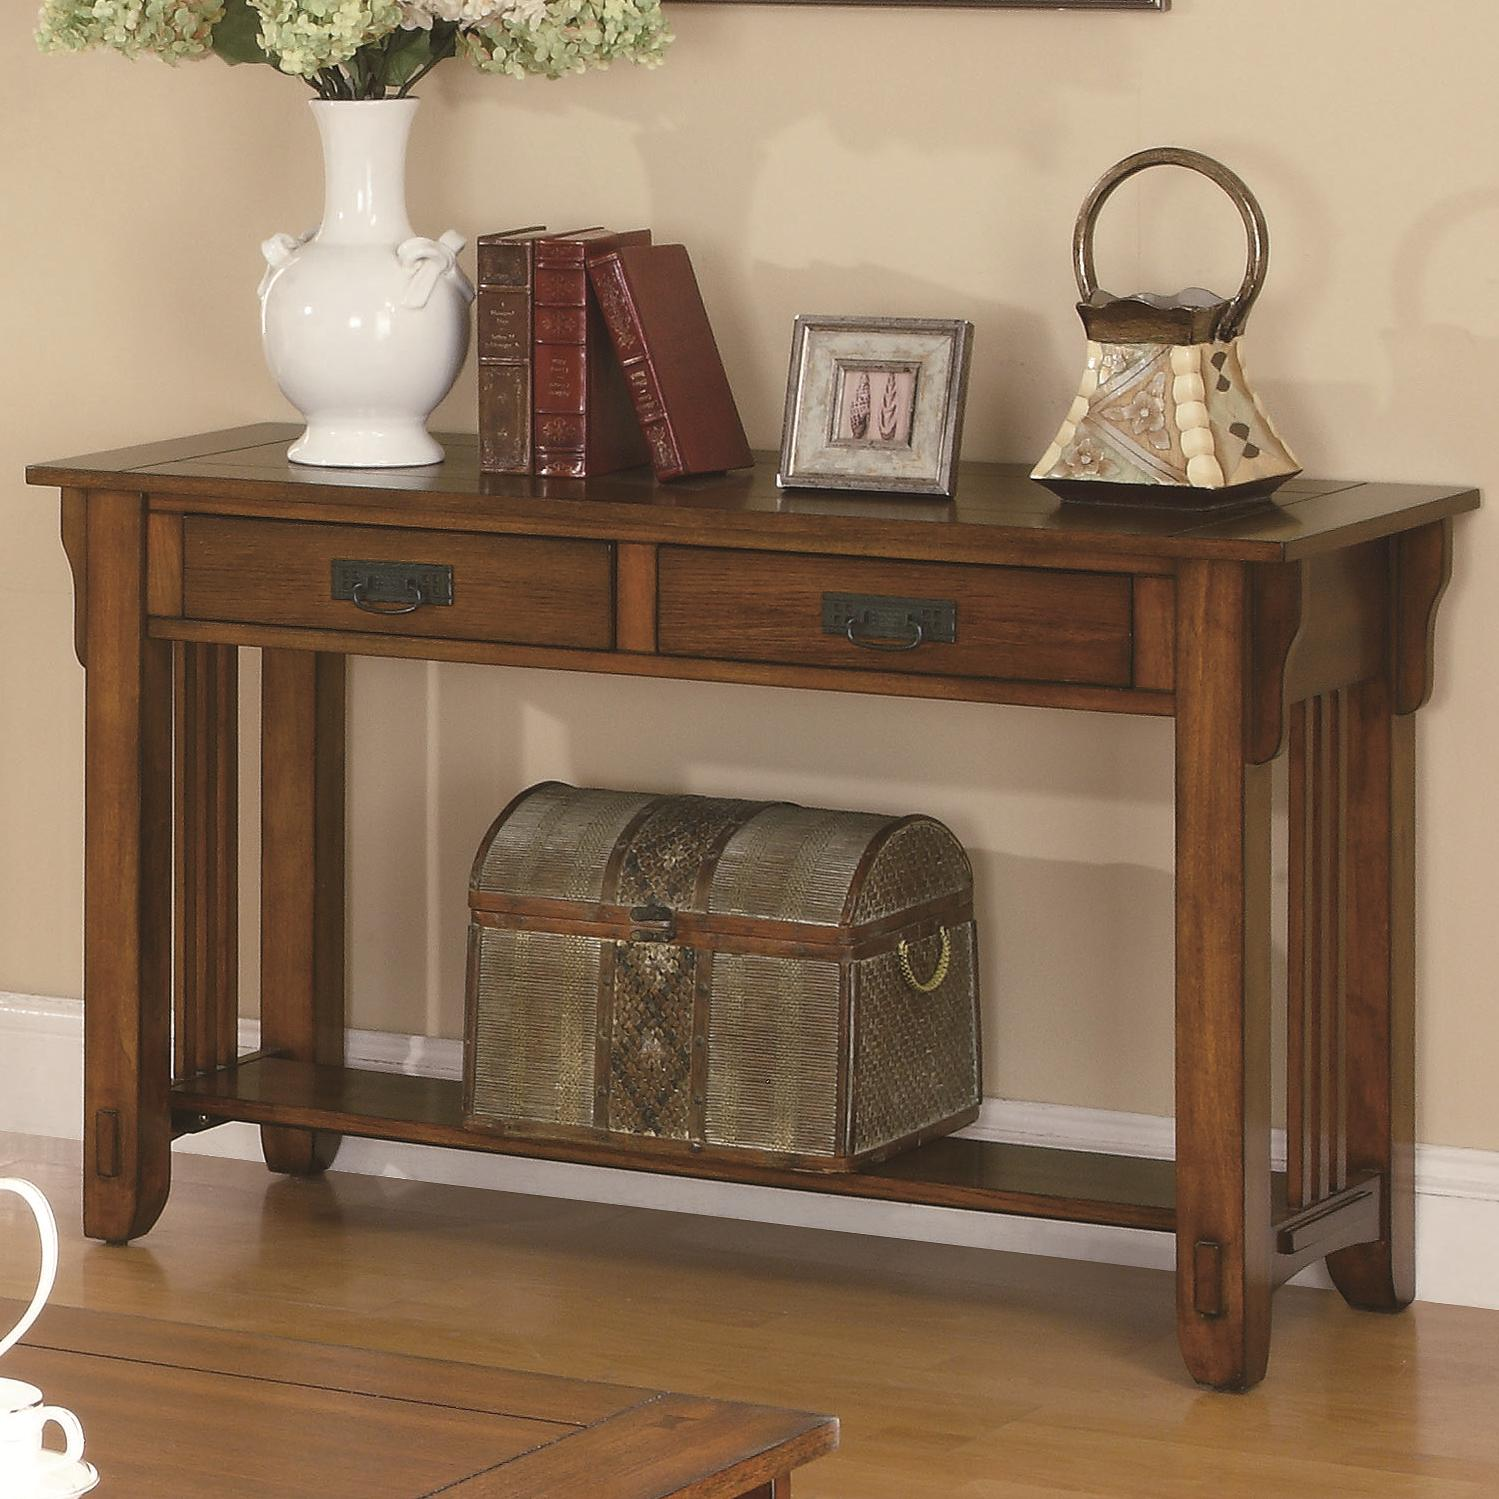 Coaster Occasional Group Sofa Table - Item Number: 702009